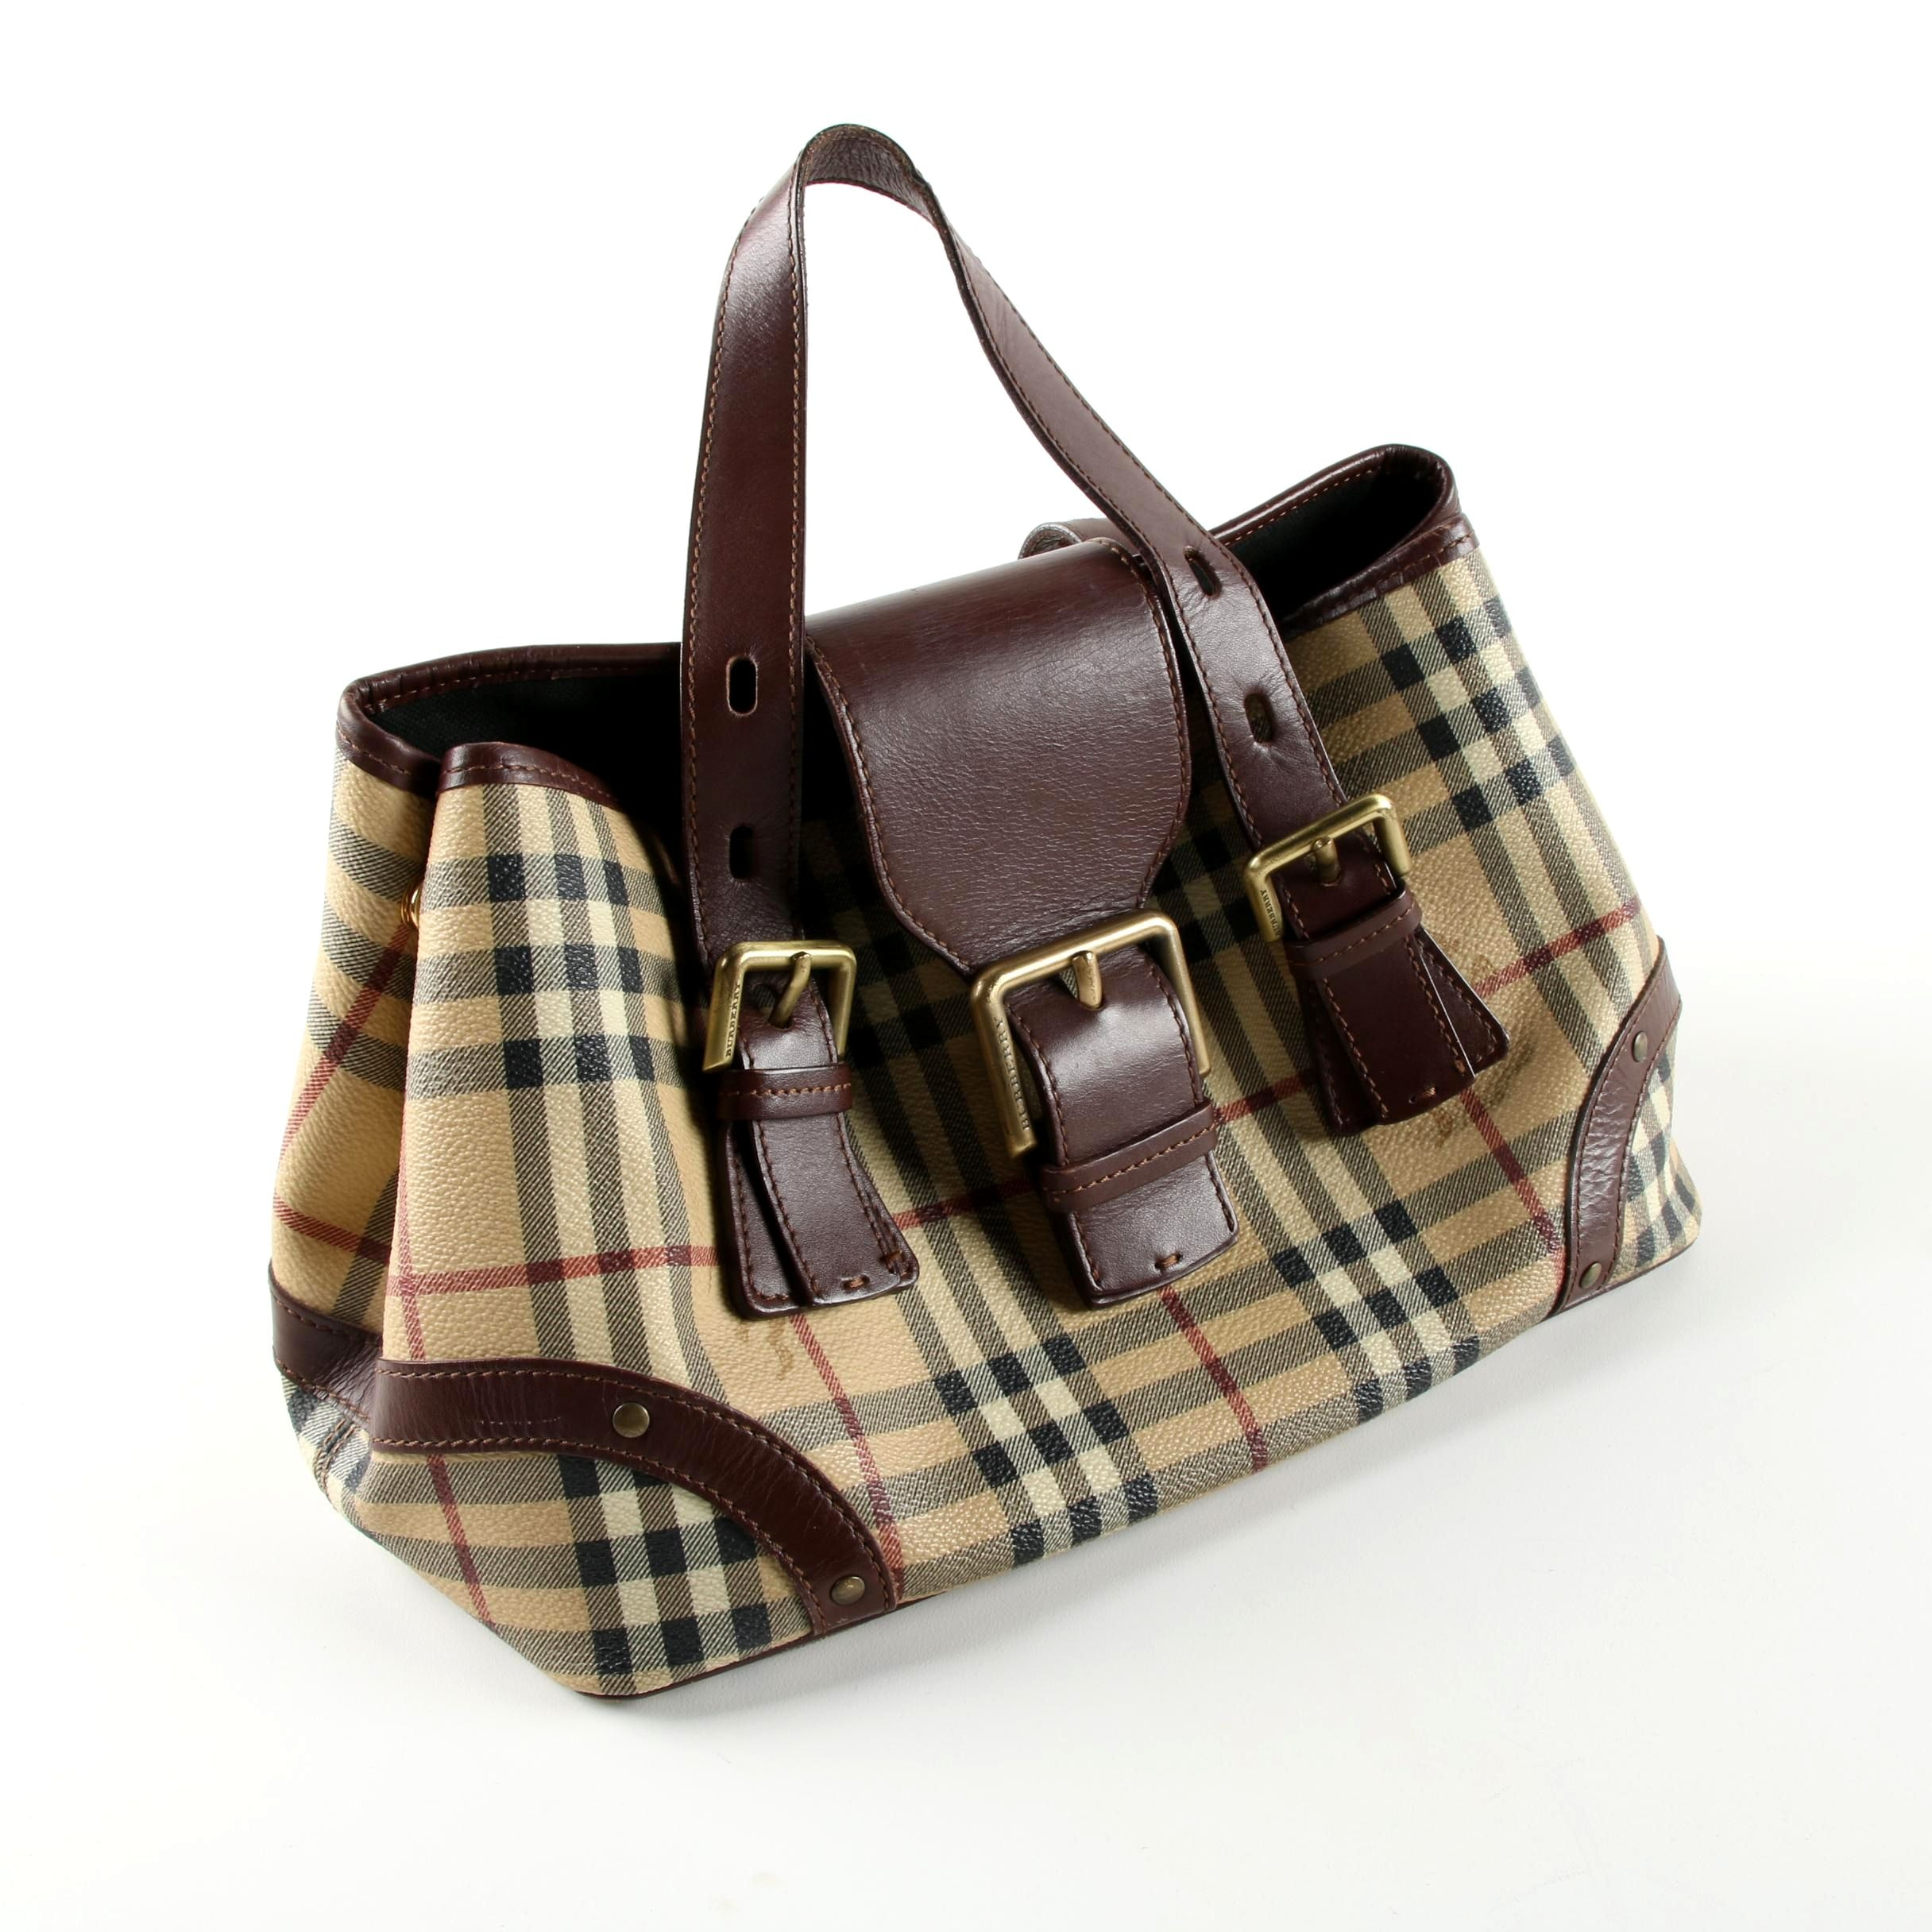 Burberry London Plaid Coated Canvas Handbag